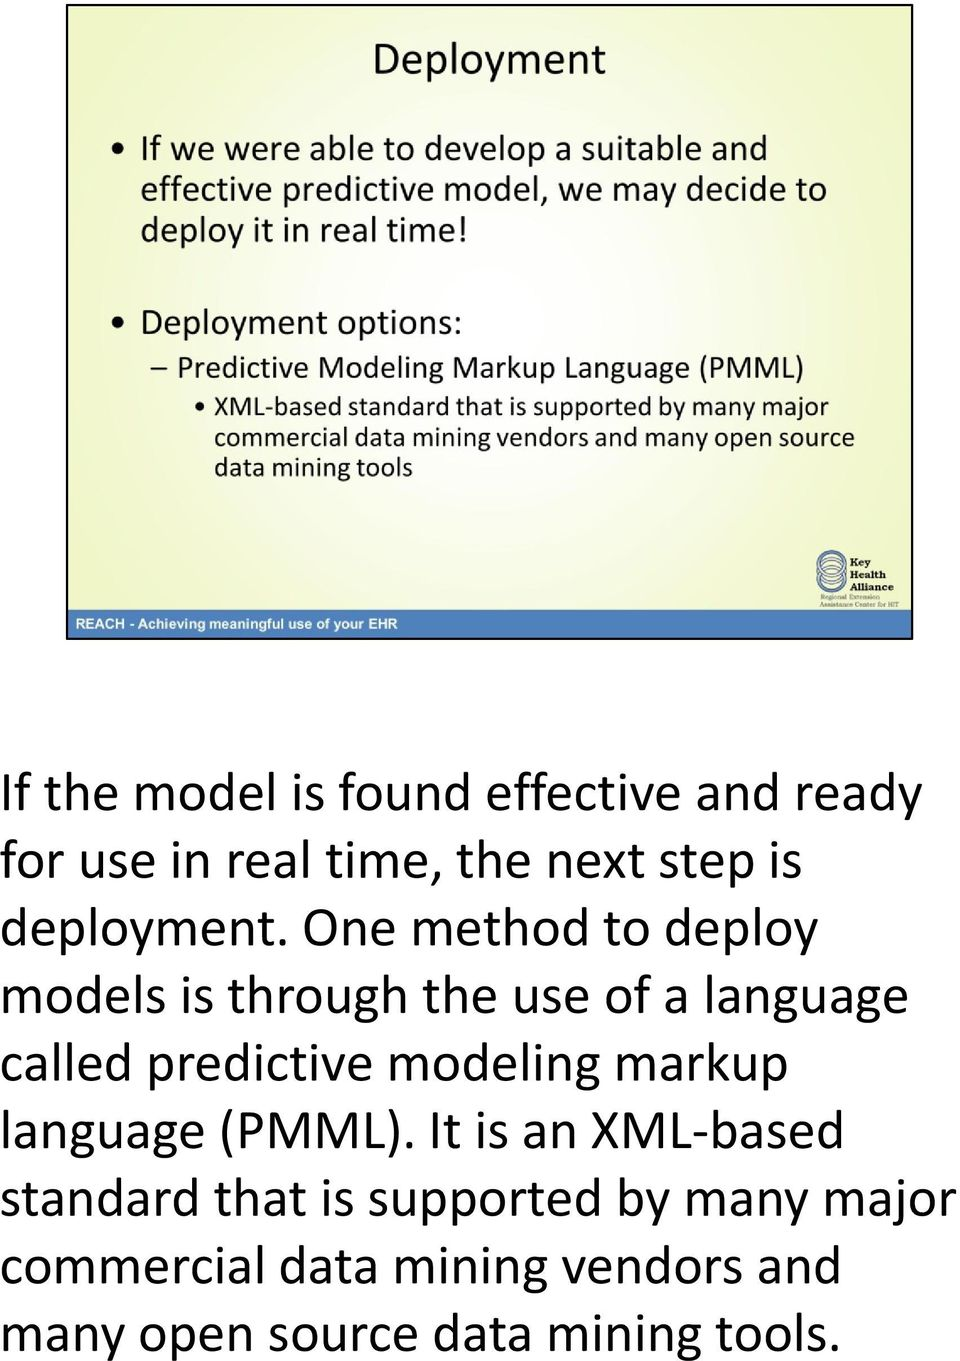 One method to deploy models is through the use of a language called predictive